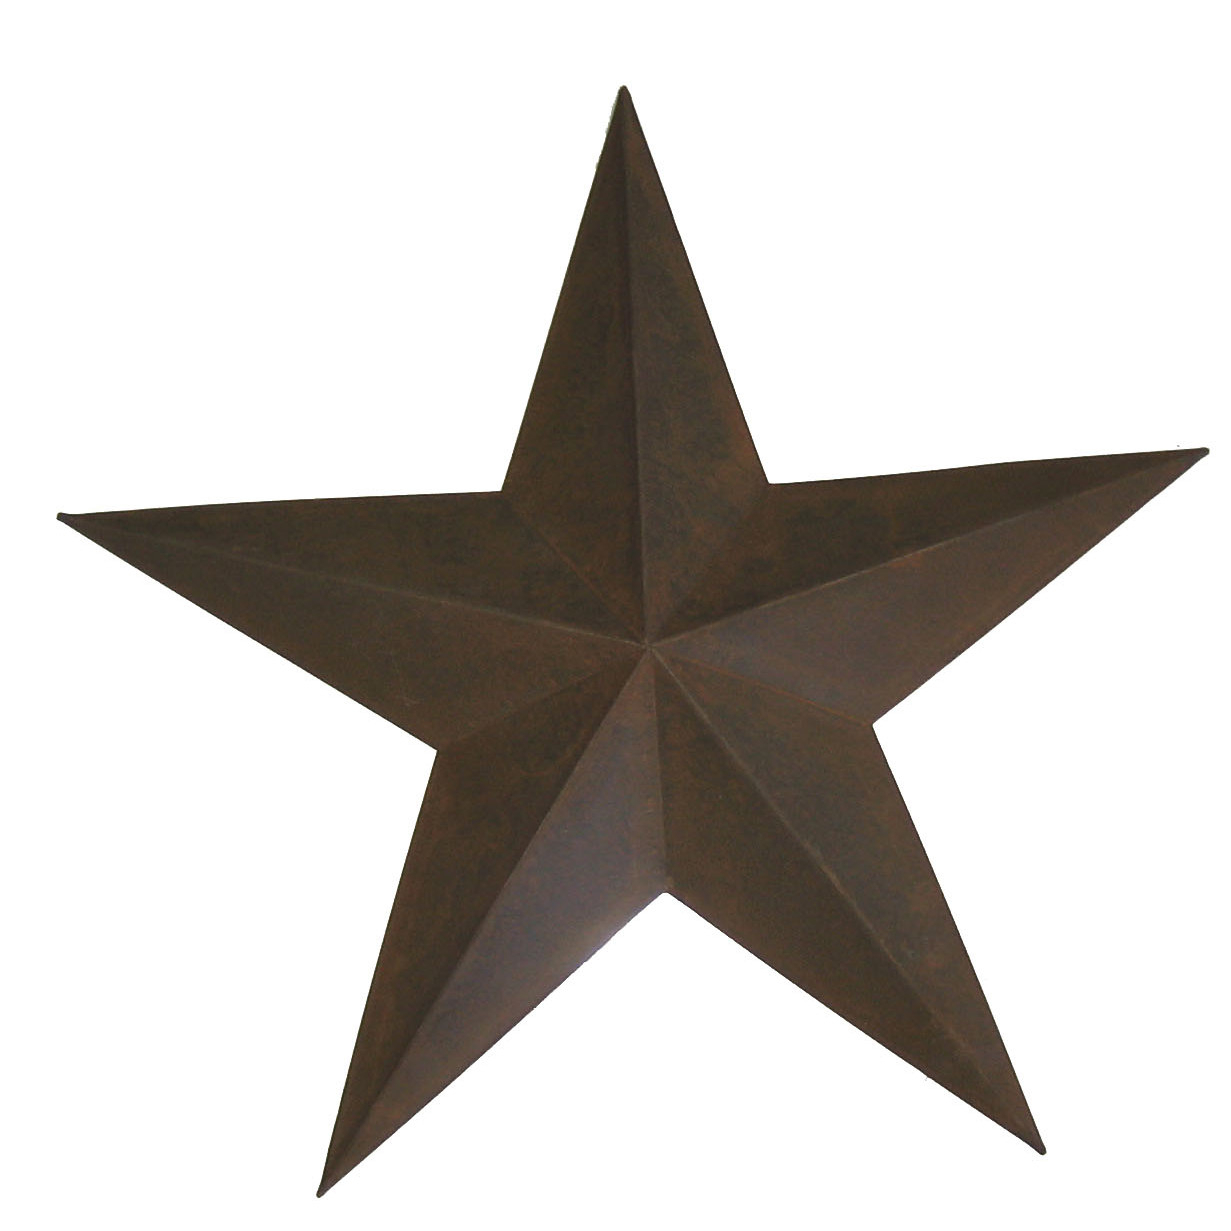 Most Current Raised Star Wall Decor Pertaining To Star Wall Art – Pmpresssecretariat (View 6 of 20)